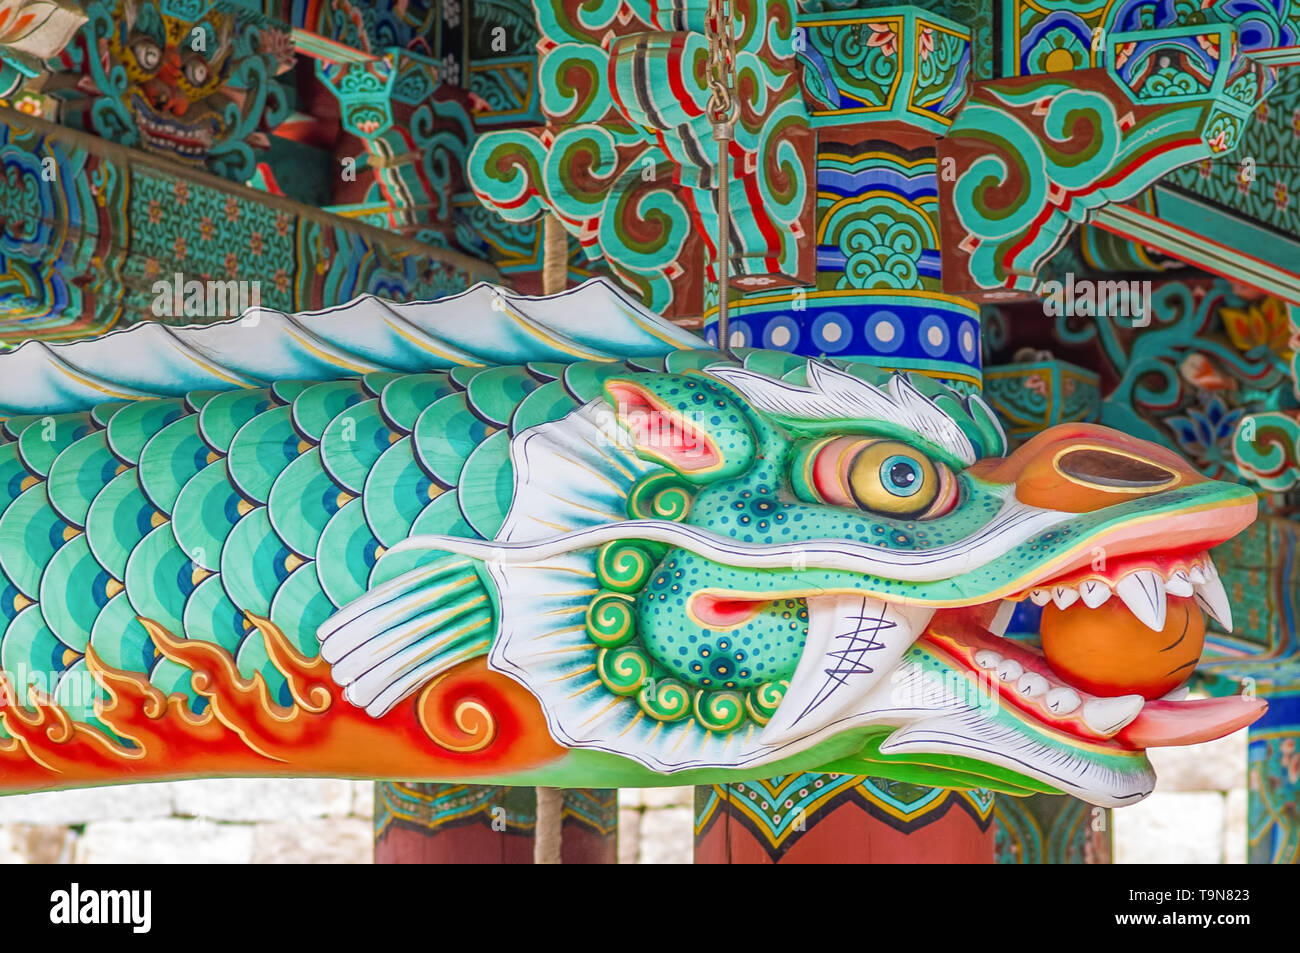 Beautiful dragon creature with vivid colors - Haeinsa Temple UNESCO World Heritage List - South Korea - Stock Image